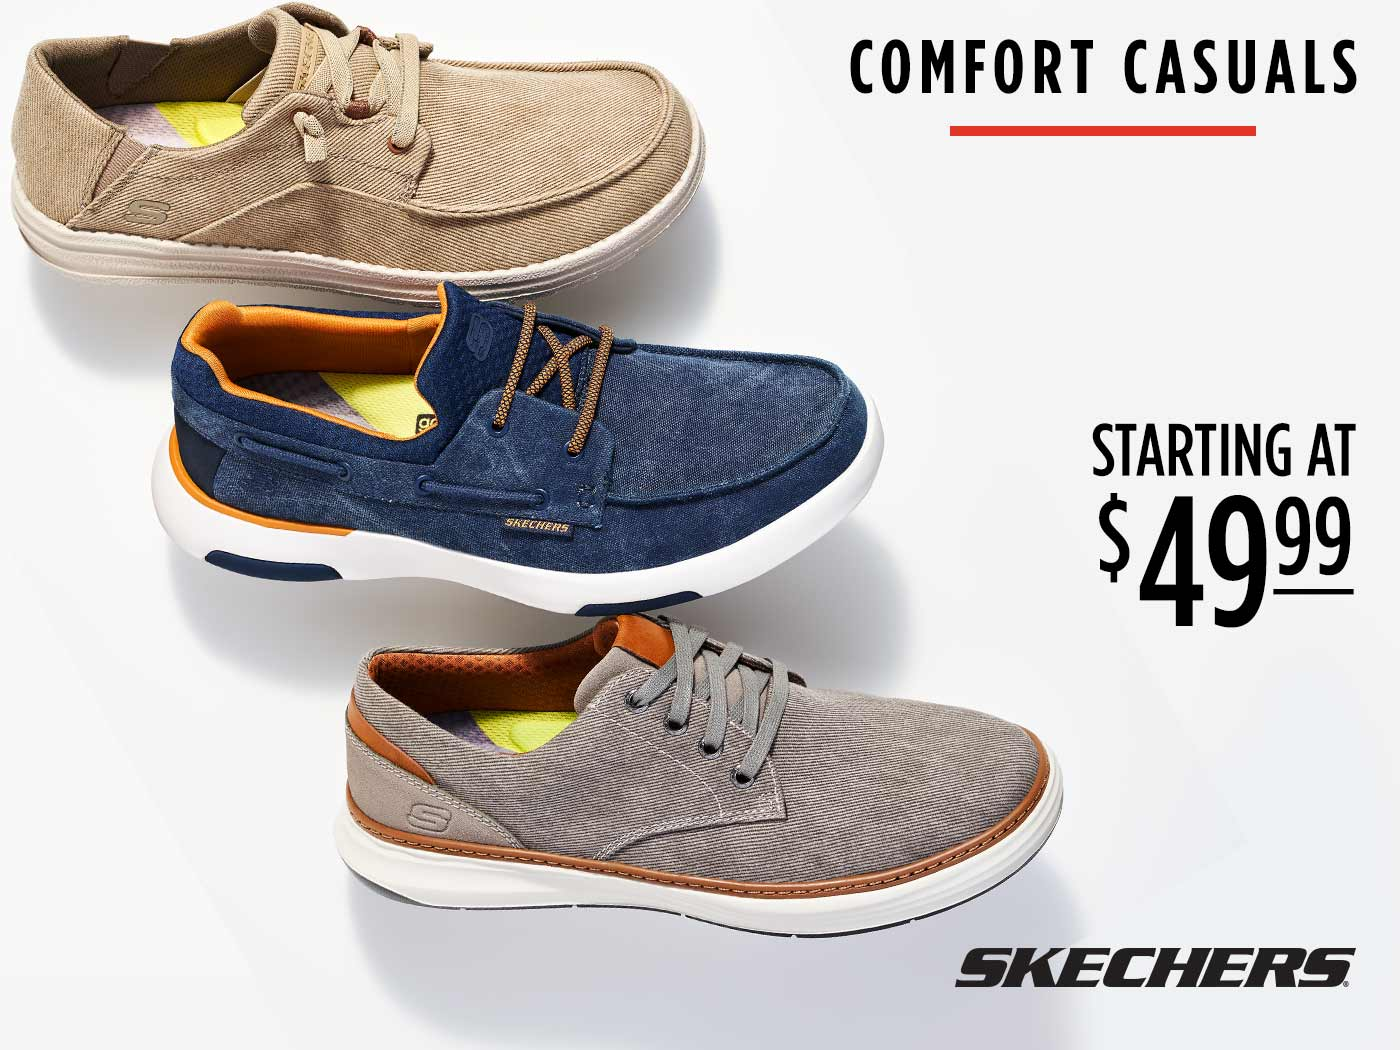 assorted mens casual skechers starting at $49.99